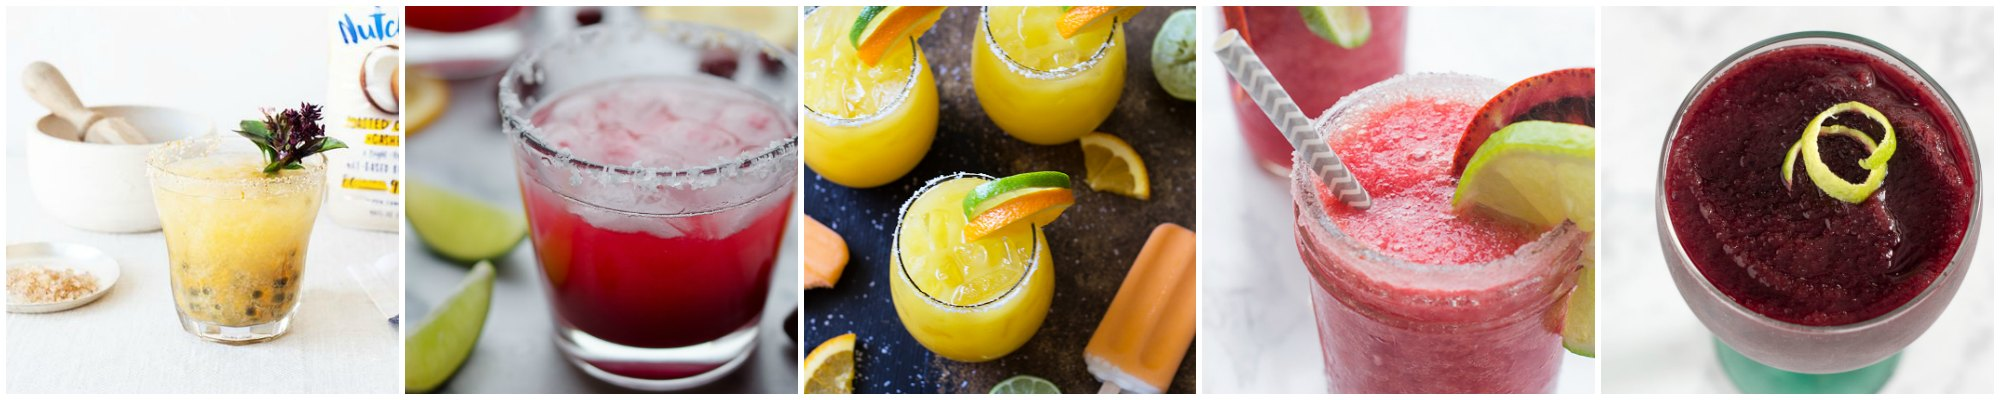 Try one or two of these margarita recipes on National Margarita Day, Wednesday, February 22nd. From classic to fruity, frozen to spicy, this list is a margarita lover's dream!